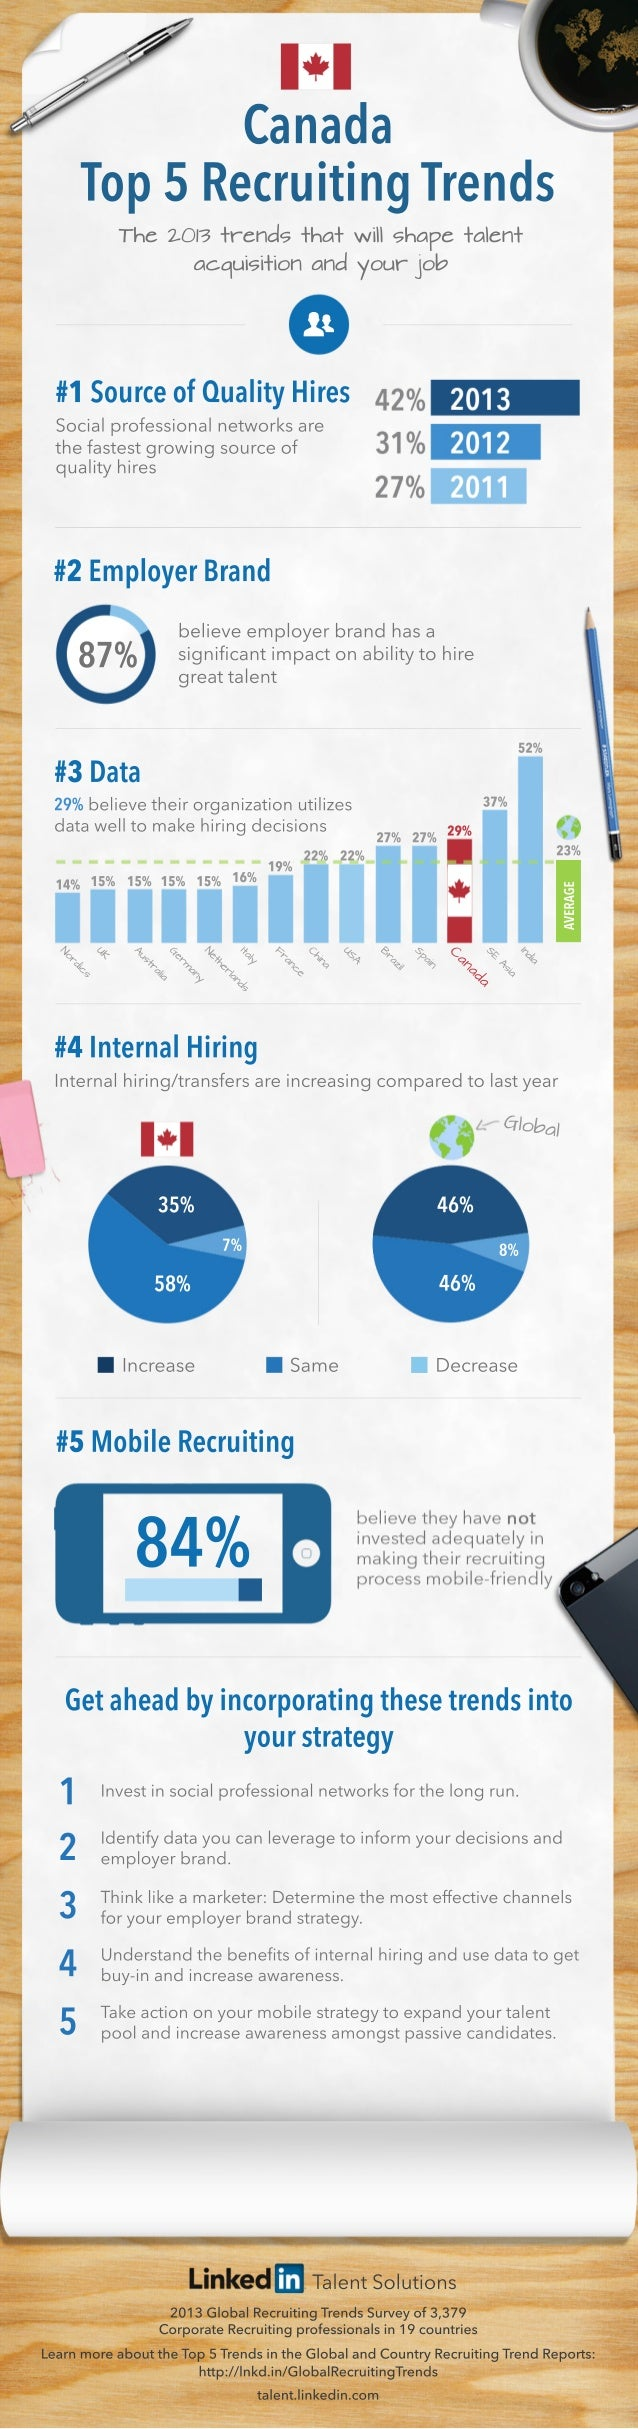 Canada Recruiting Trends Infographic 2013 | English